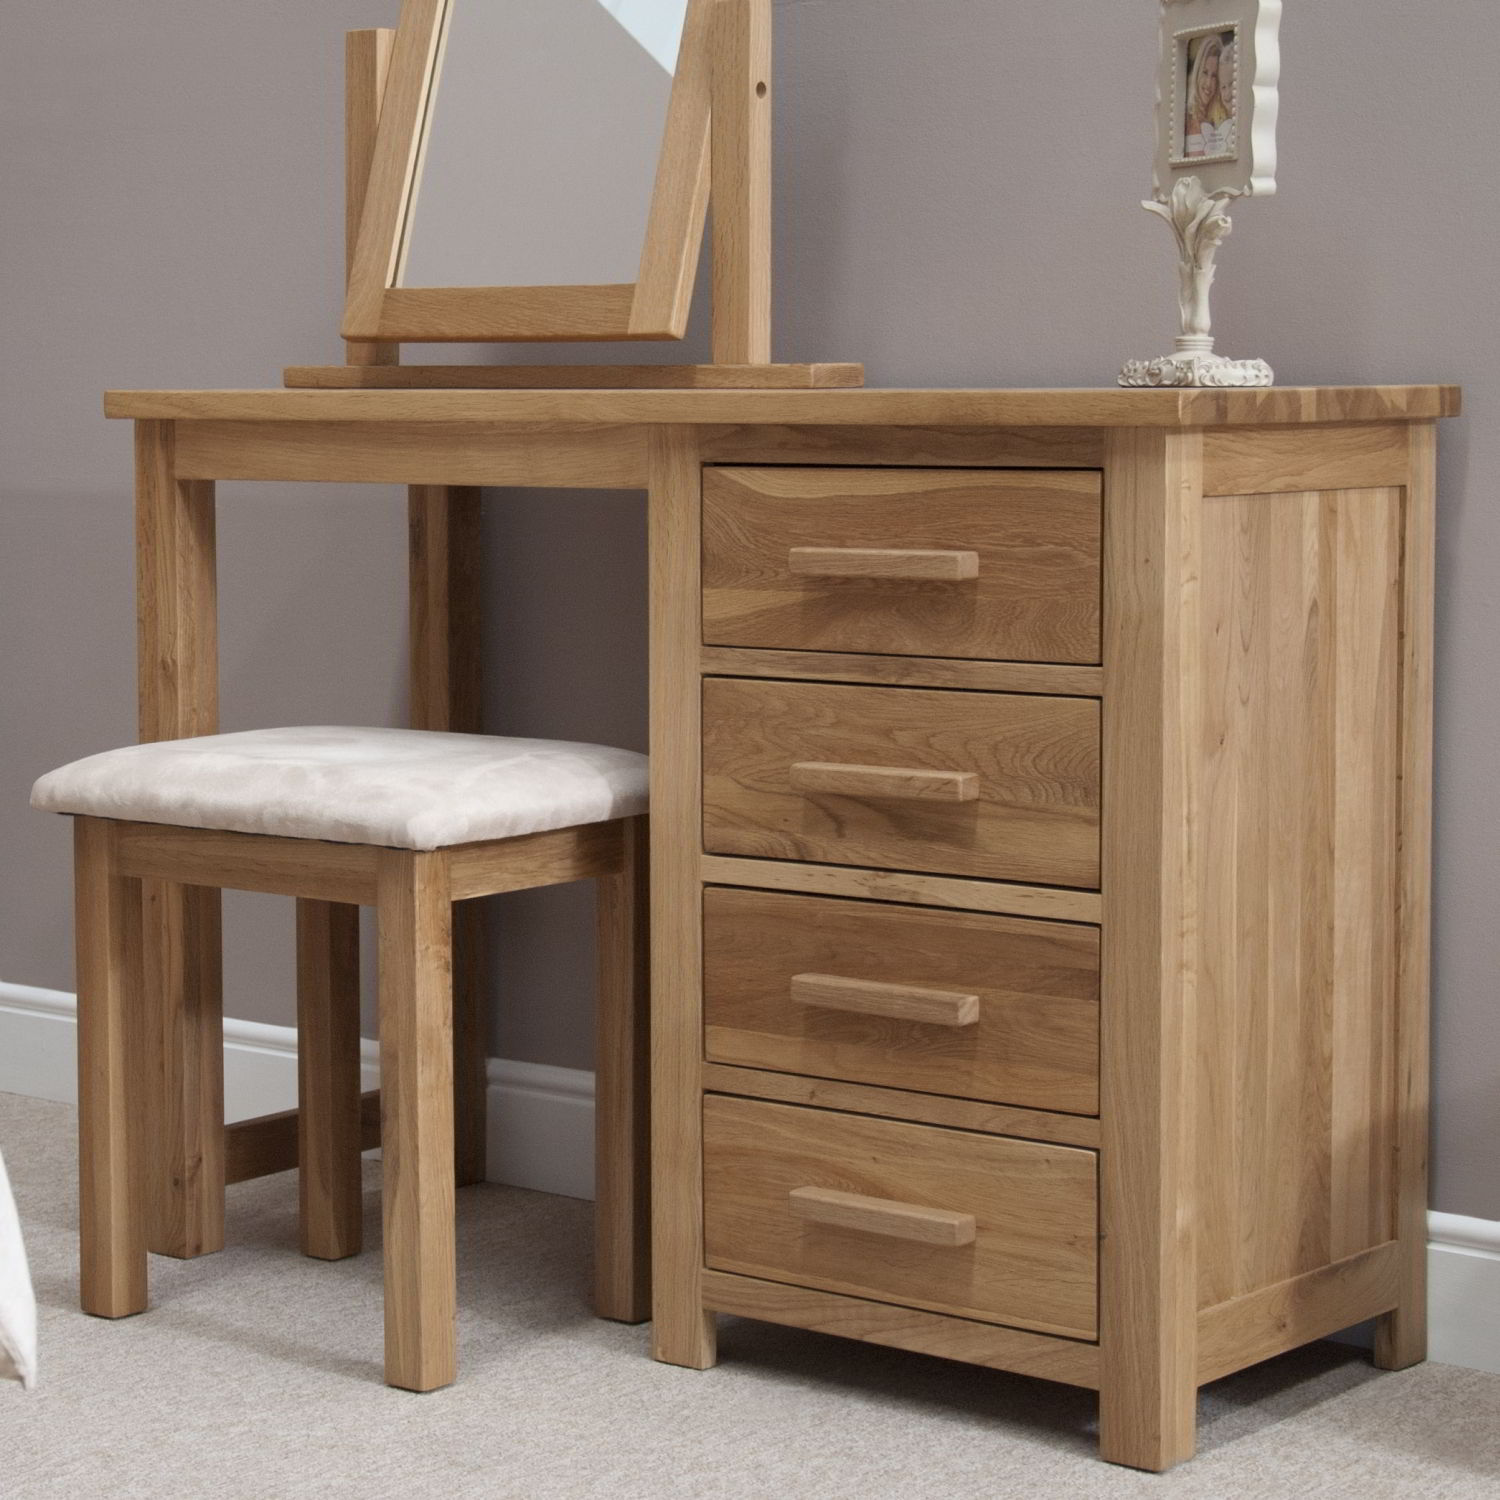 Eton solid oak contemporary bedroom furniture dressing for Solid oak furniture